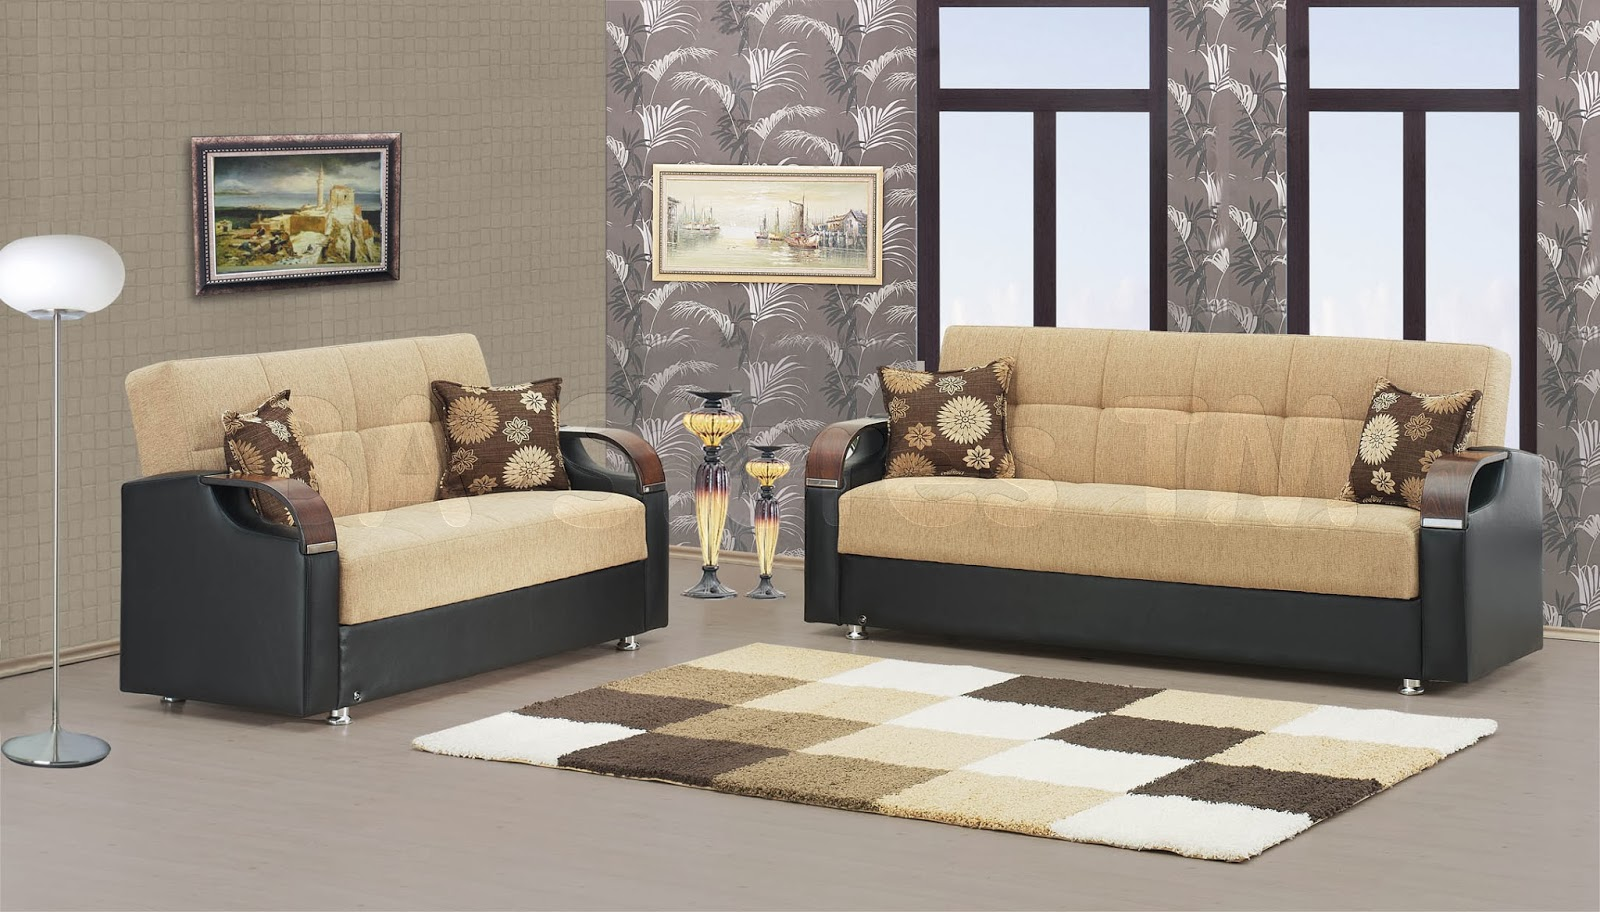 New fashion in sofa set design 2014 Living room sofa set